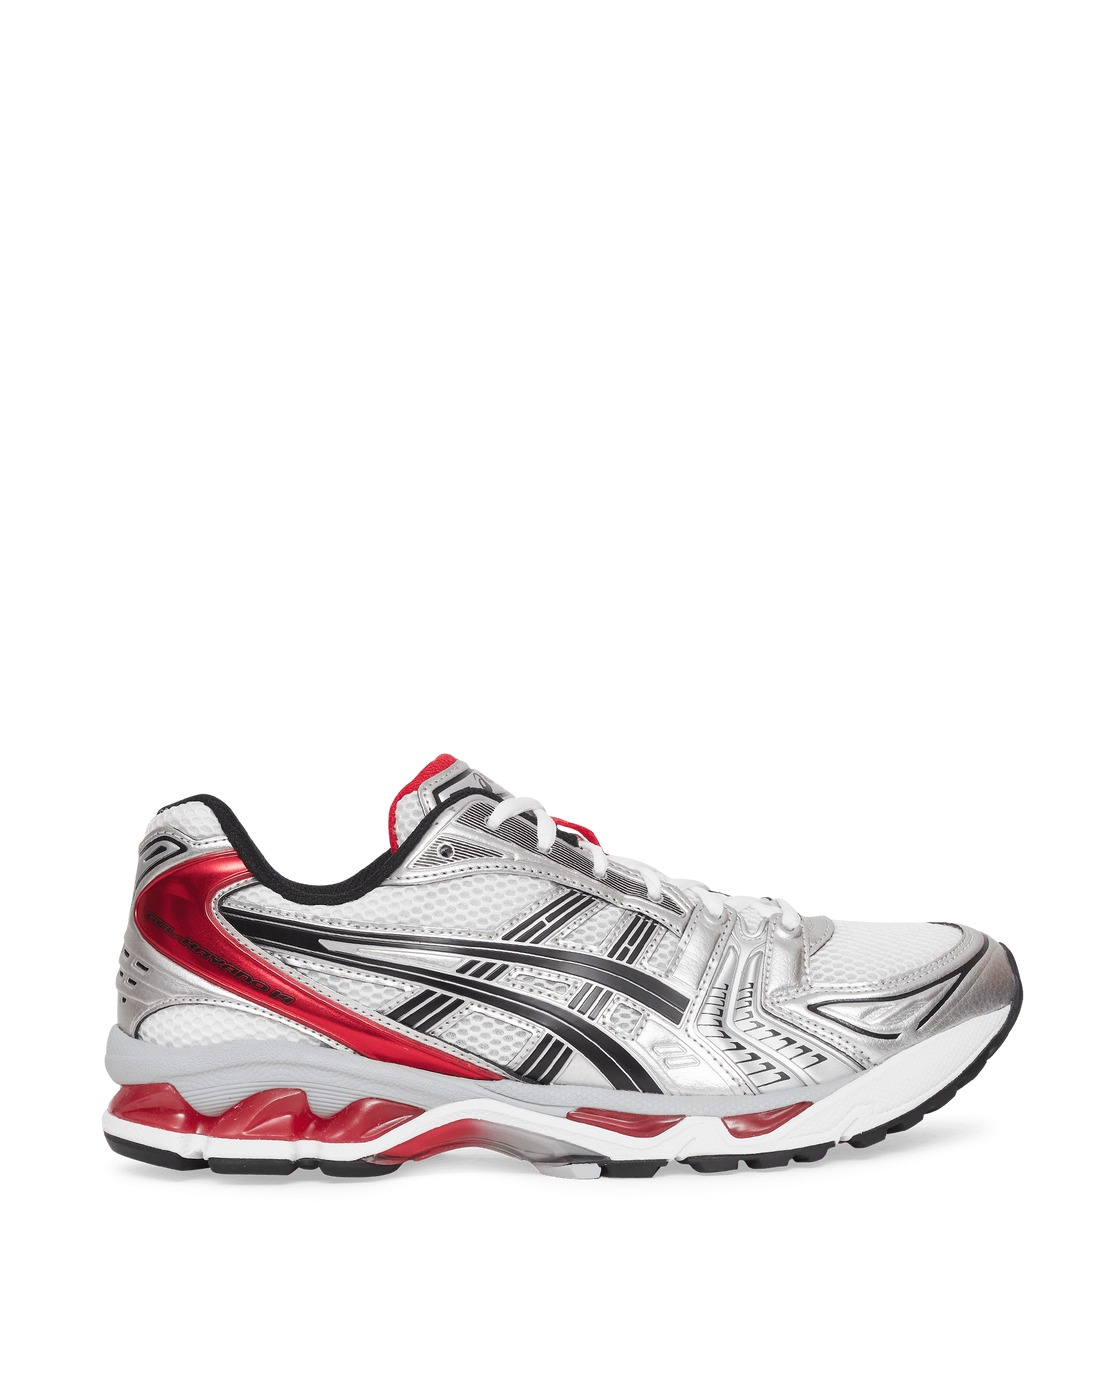 Asics Gel Kayano 14 Sneakers White/Classic Red